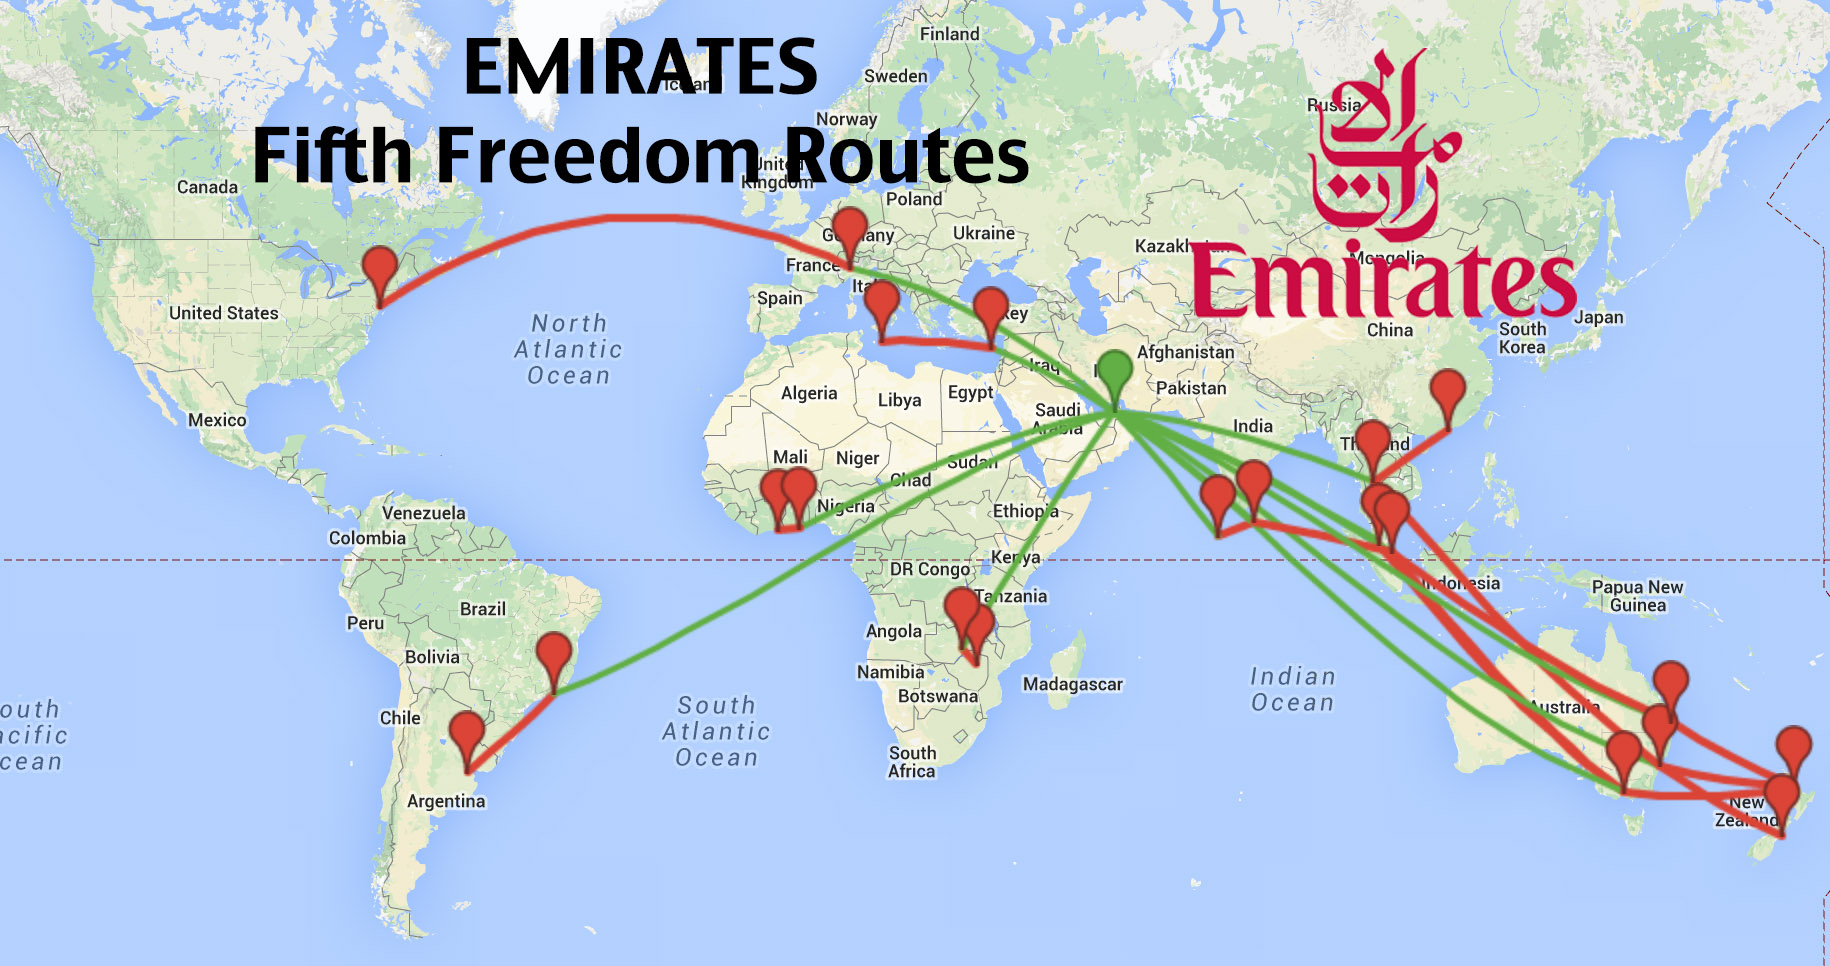 Top 16 longest emirates fifth freedom routes coming to a city near top 16 longest emirates fifth freedom routes coming to a city near you publicscrutiny Choice Image